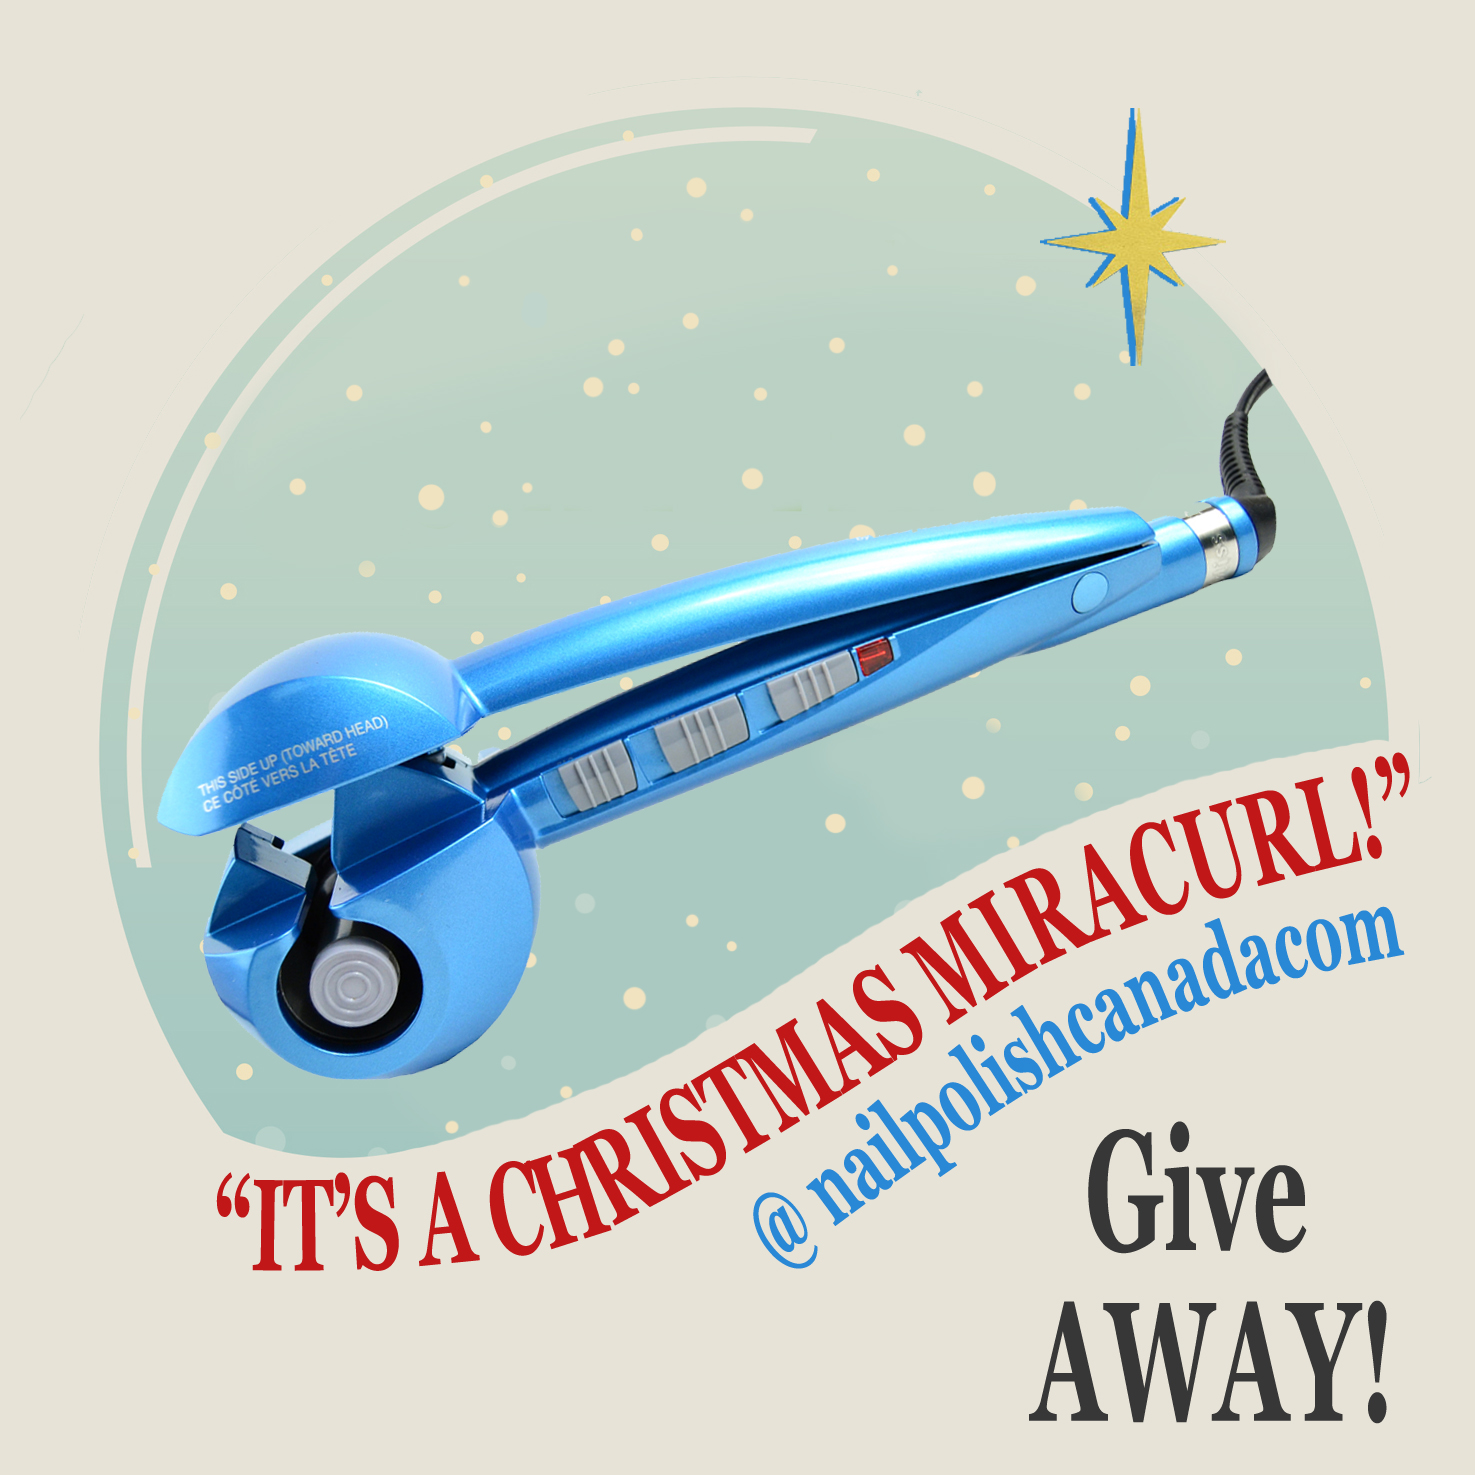 NPC Giveaway Babyliss Miracurl Promo Poster